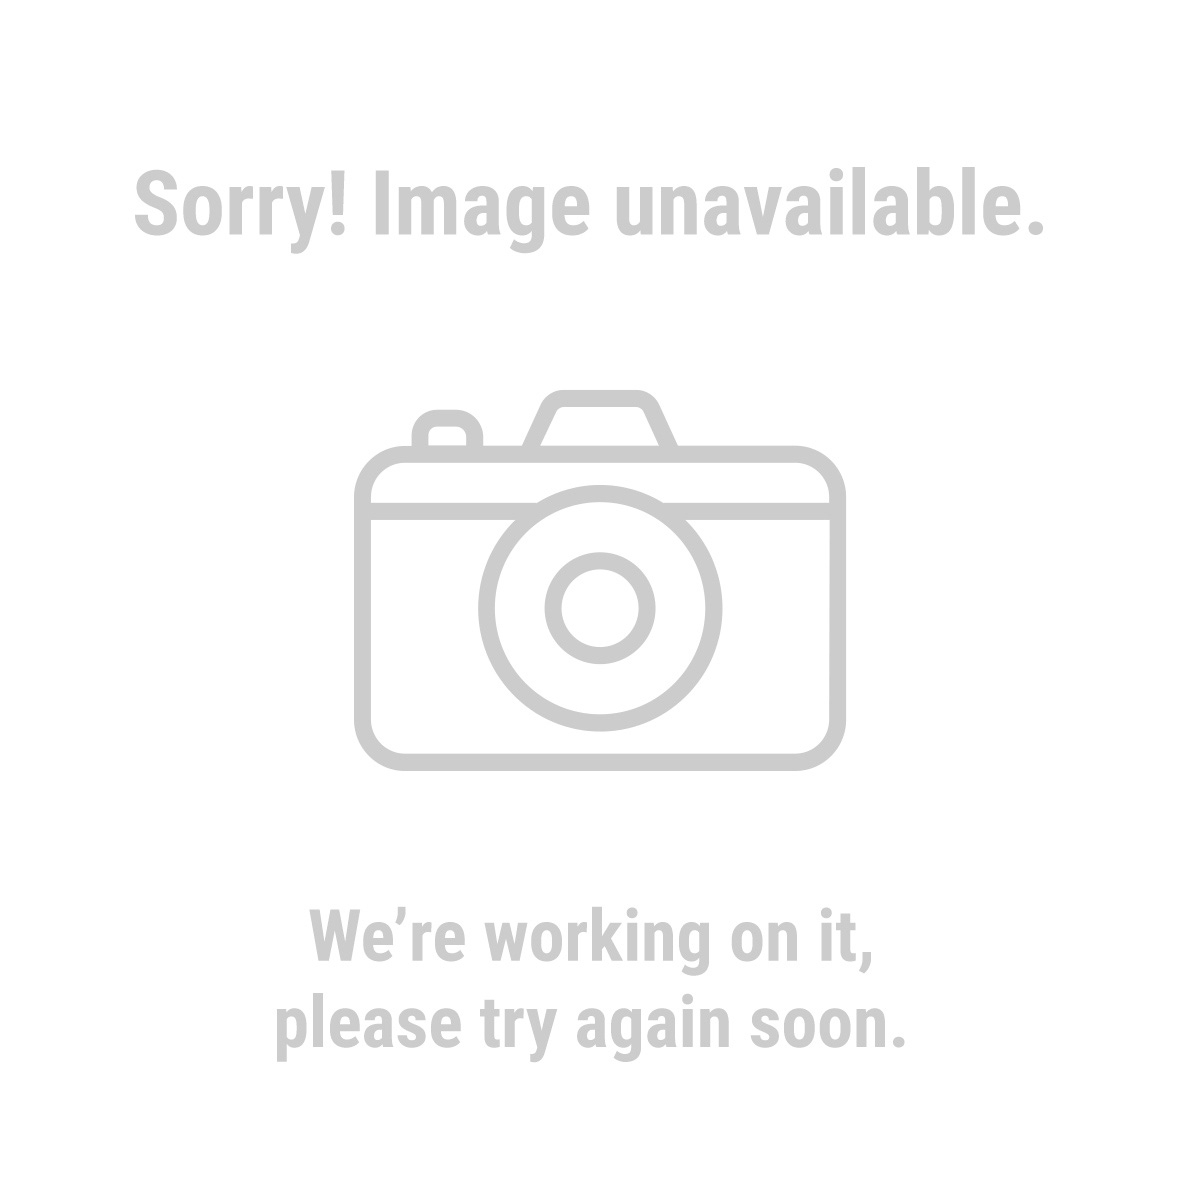 61716 3 Ft. x 5 Ft. American Flag with Embroidered Stars